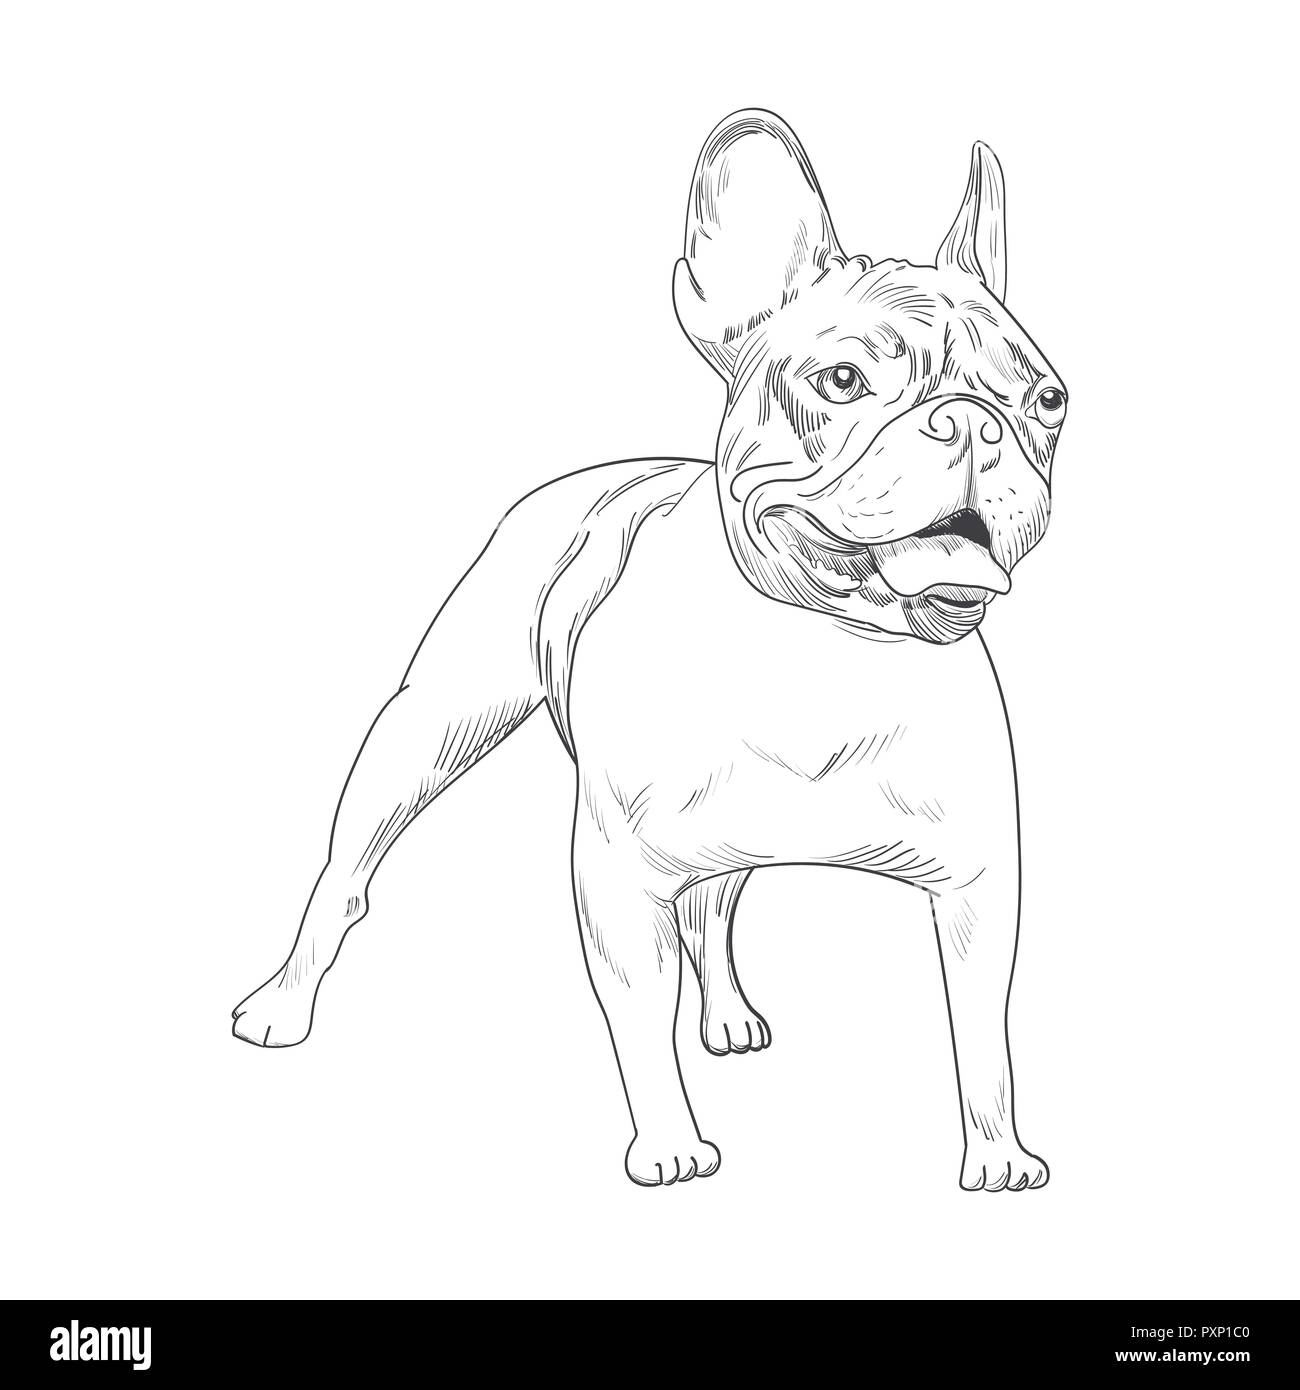 French bulldog hand drawn sketch isolated on white background.   Purebred dog artistic outline illustration. - Stock Image